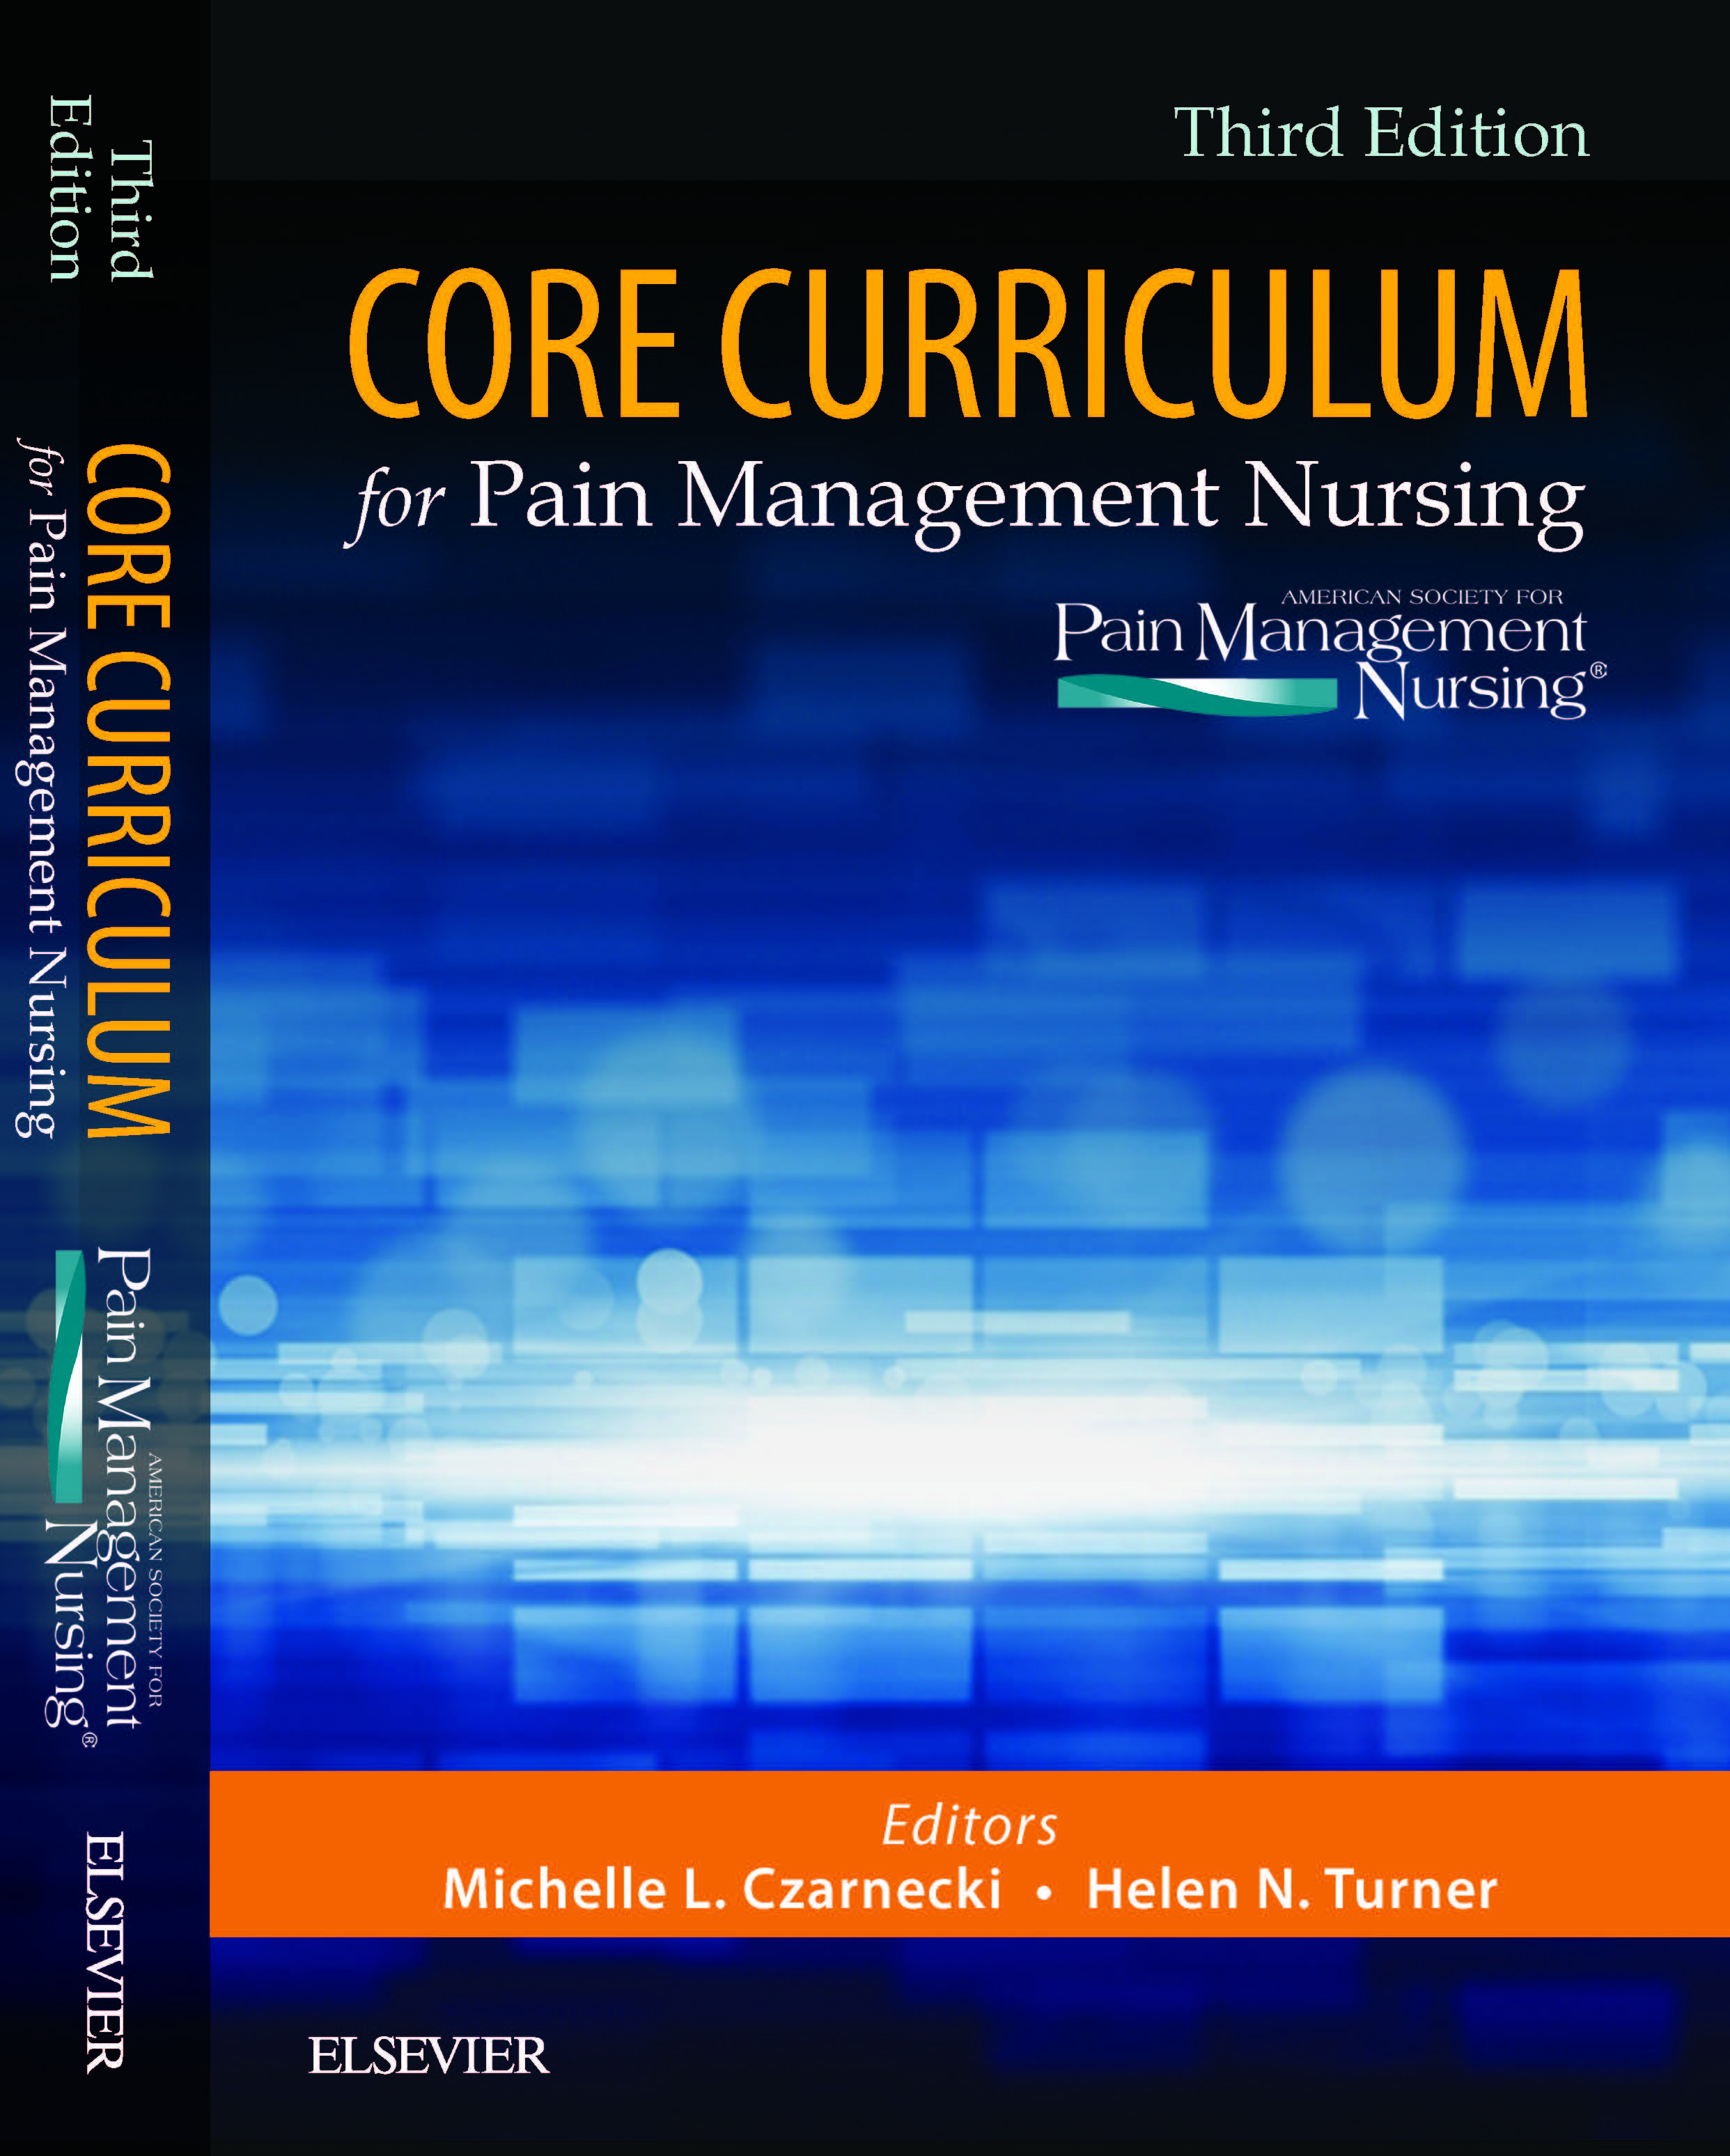 Certification aspmn disclaimer aspmn supports the ancc in its mission to develop fair and reasonable exams to confer pain management nursing certification xflitez Image collections